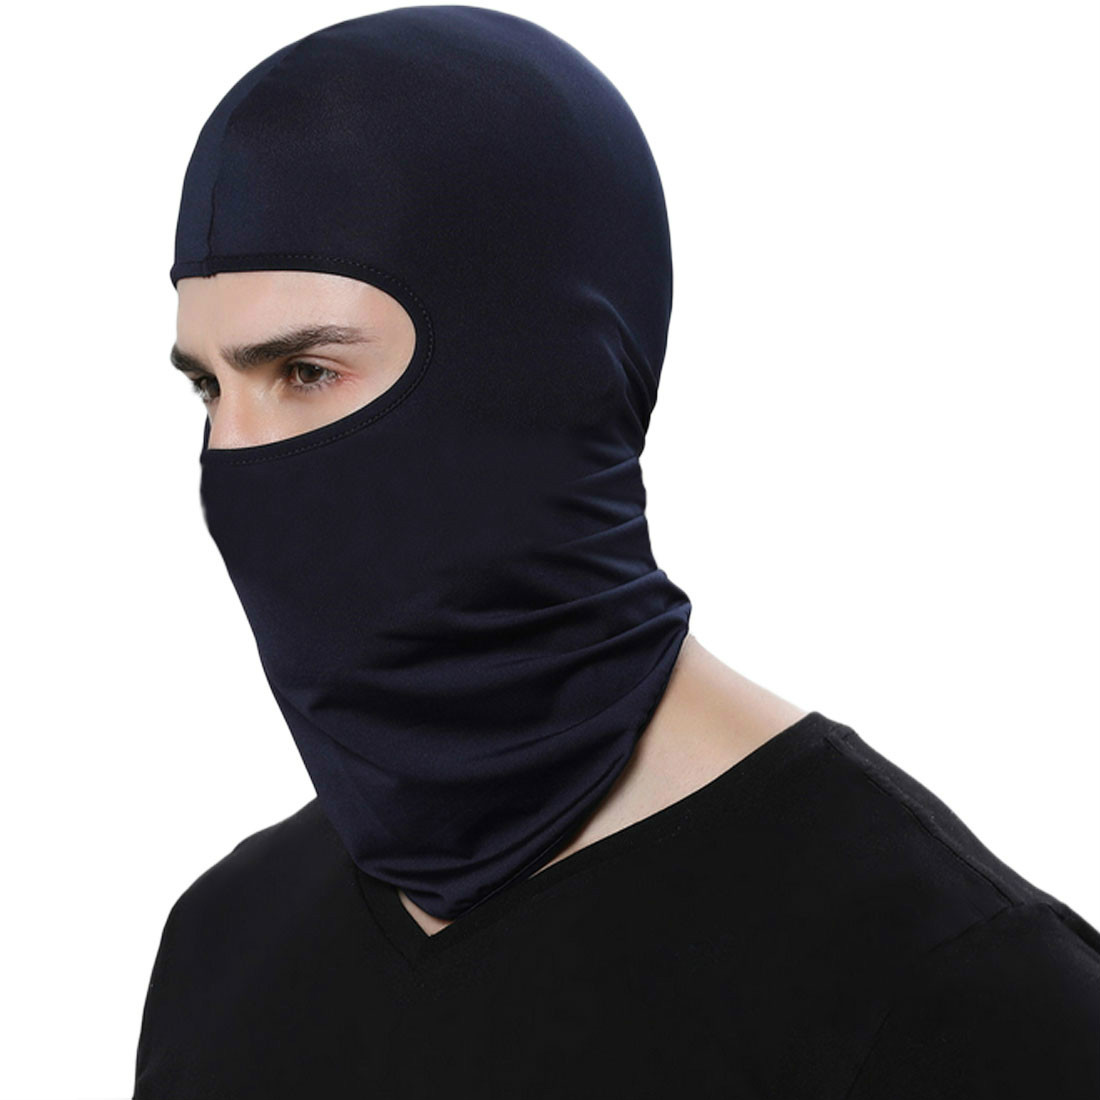 2018 Hot Selling Cycling Face Mask Ski Neck Protecting Outdoor Balaclava Full Face Mask Ultra Thin Breathable Windproof